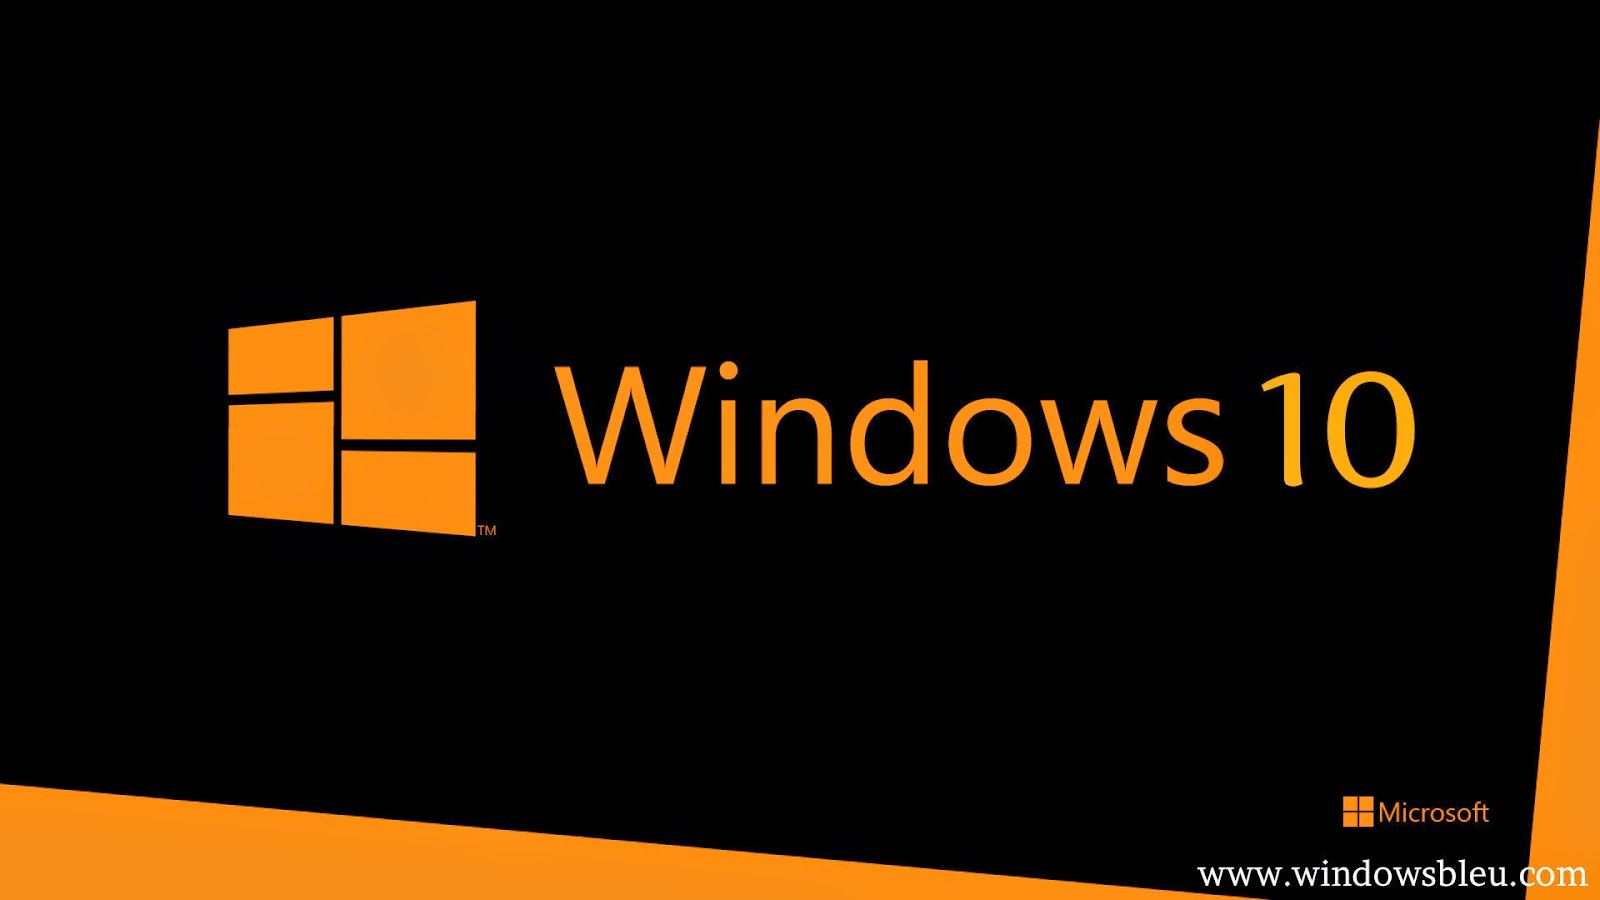 30 Beautiful Windows 10 Hd Wallpapers Techusg Windows Desktop Wallpaper Wallpaper Windows 10 Computer Wallpaper Desktop Wallpapers